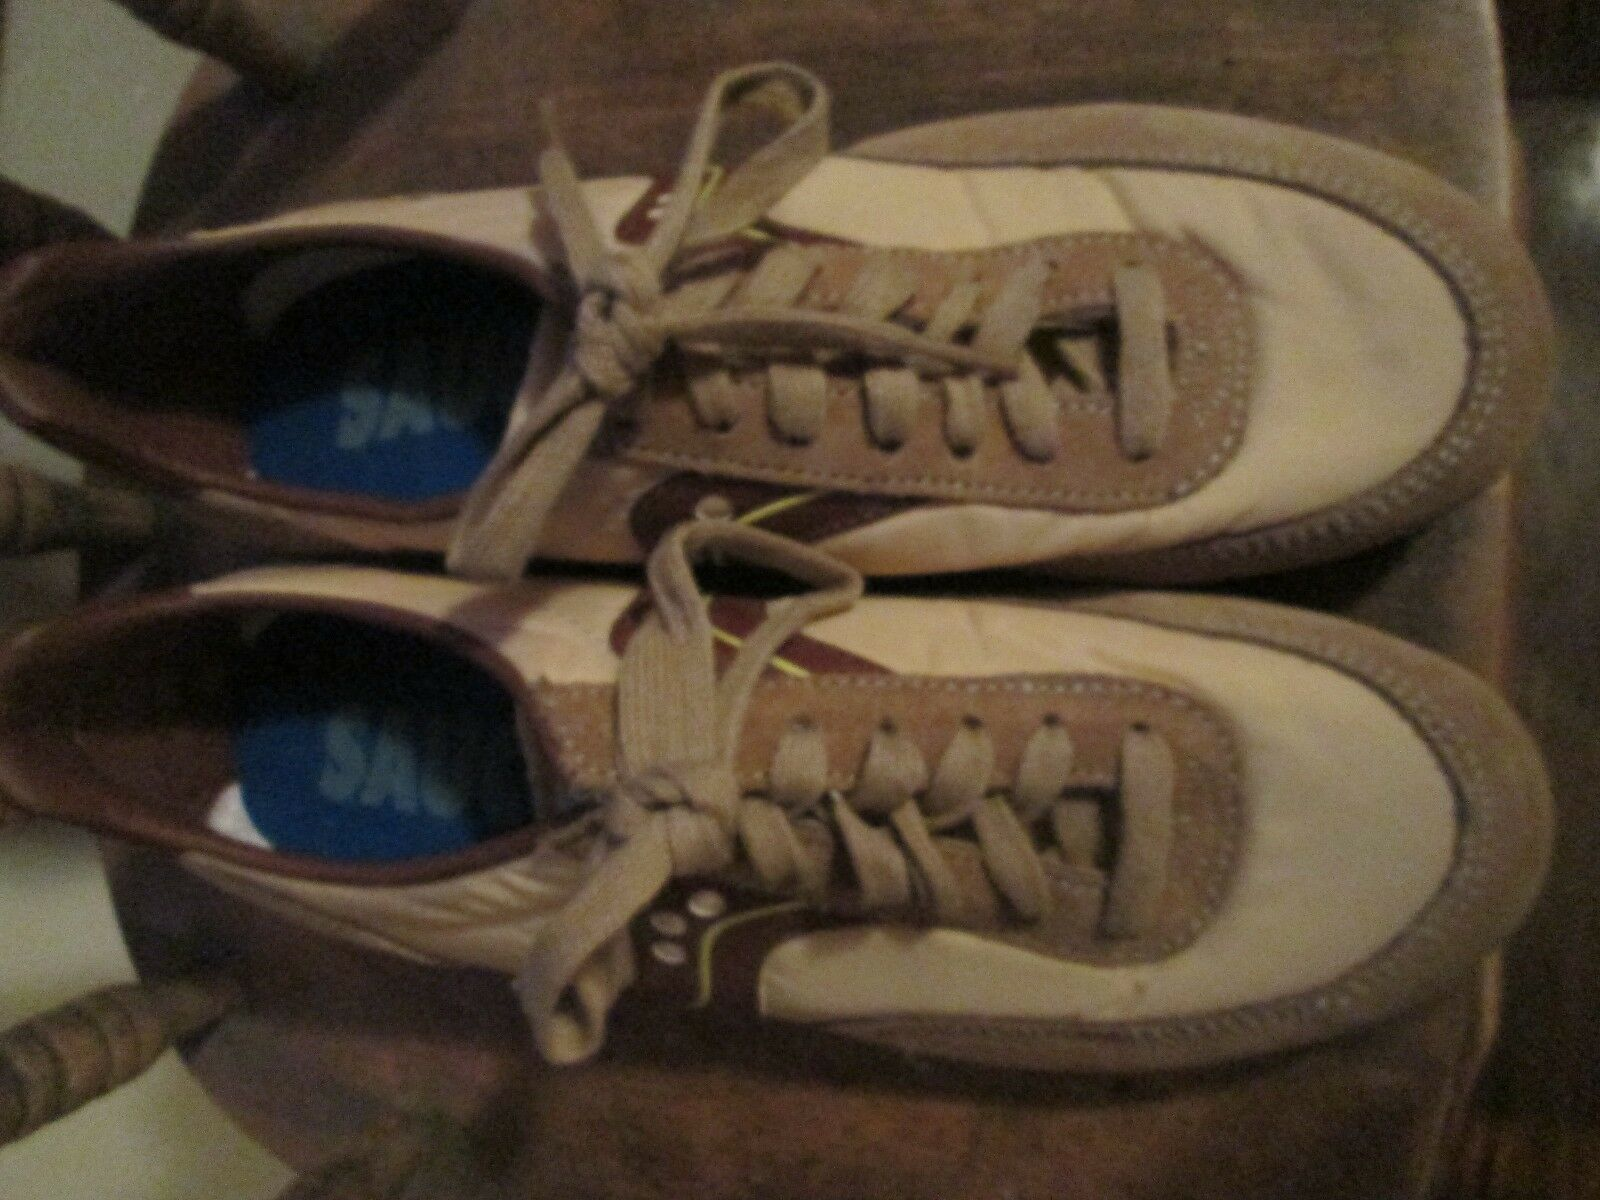 SAUCONY Wome'ns Running Sneakers Tan Sz. 9